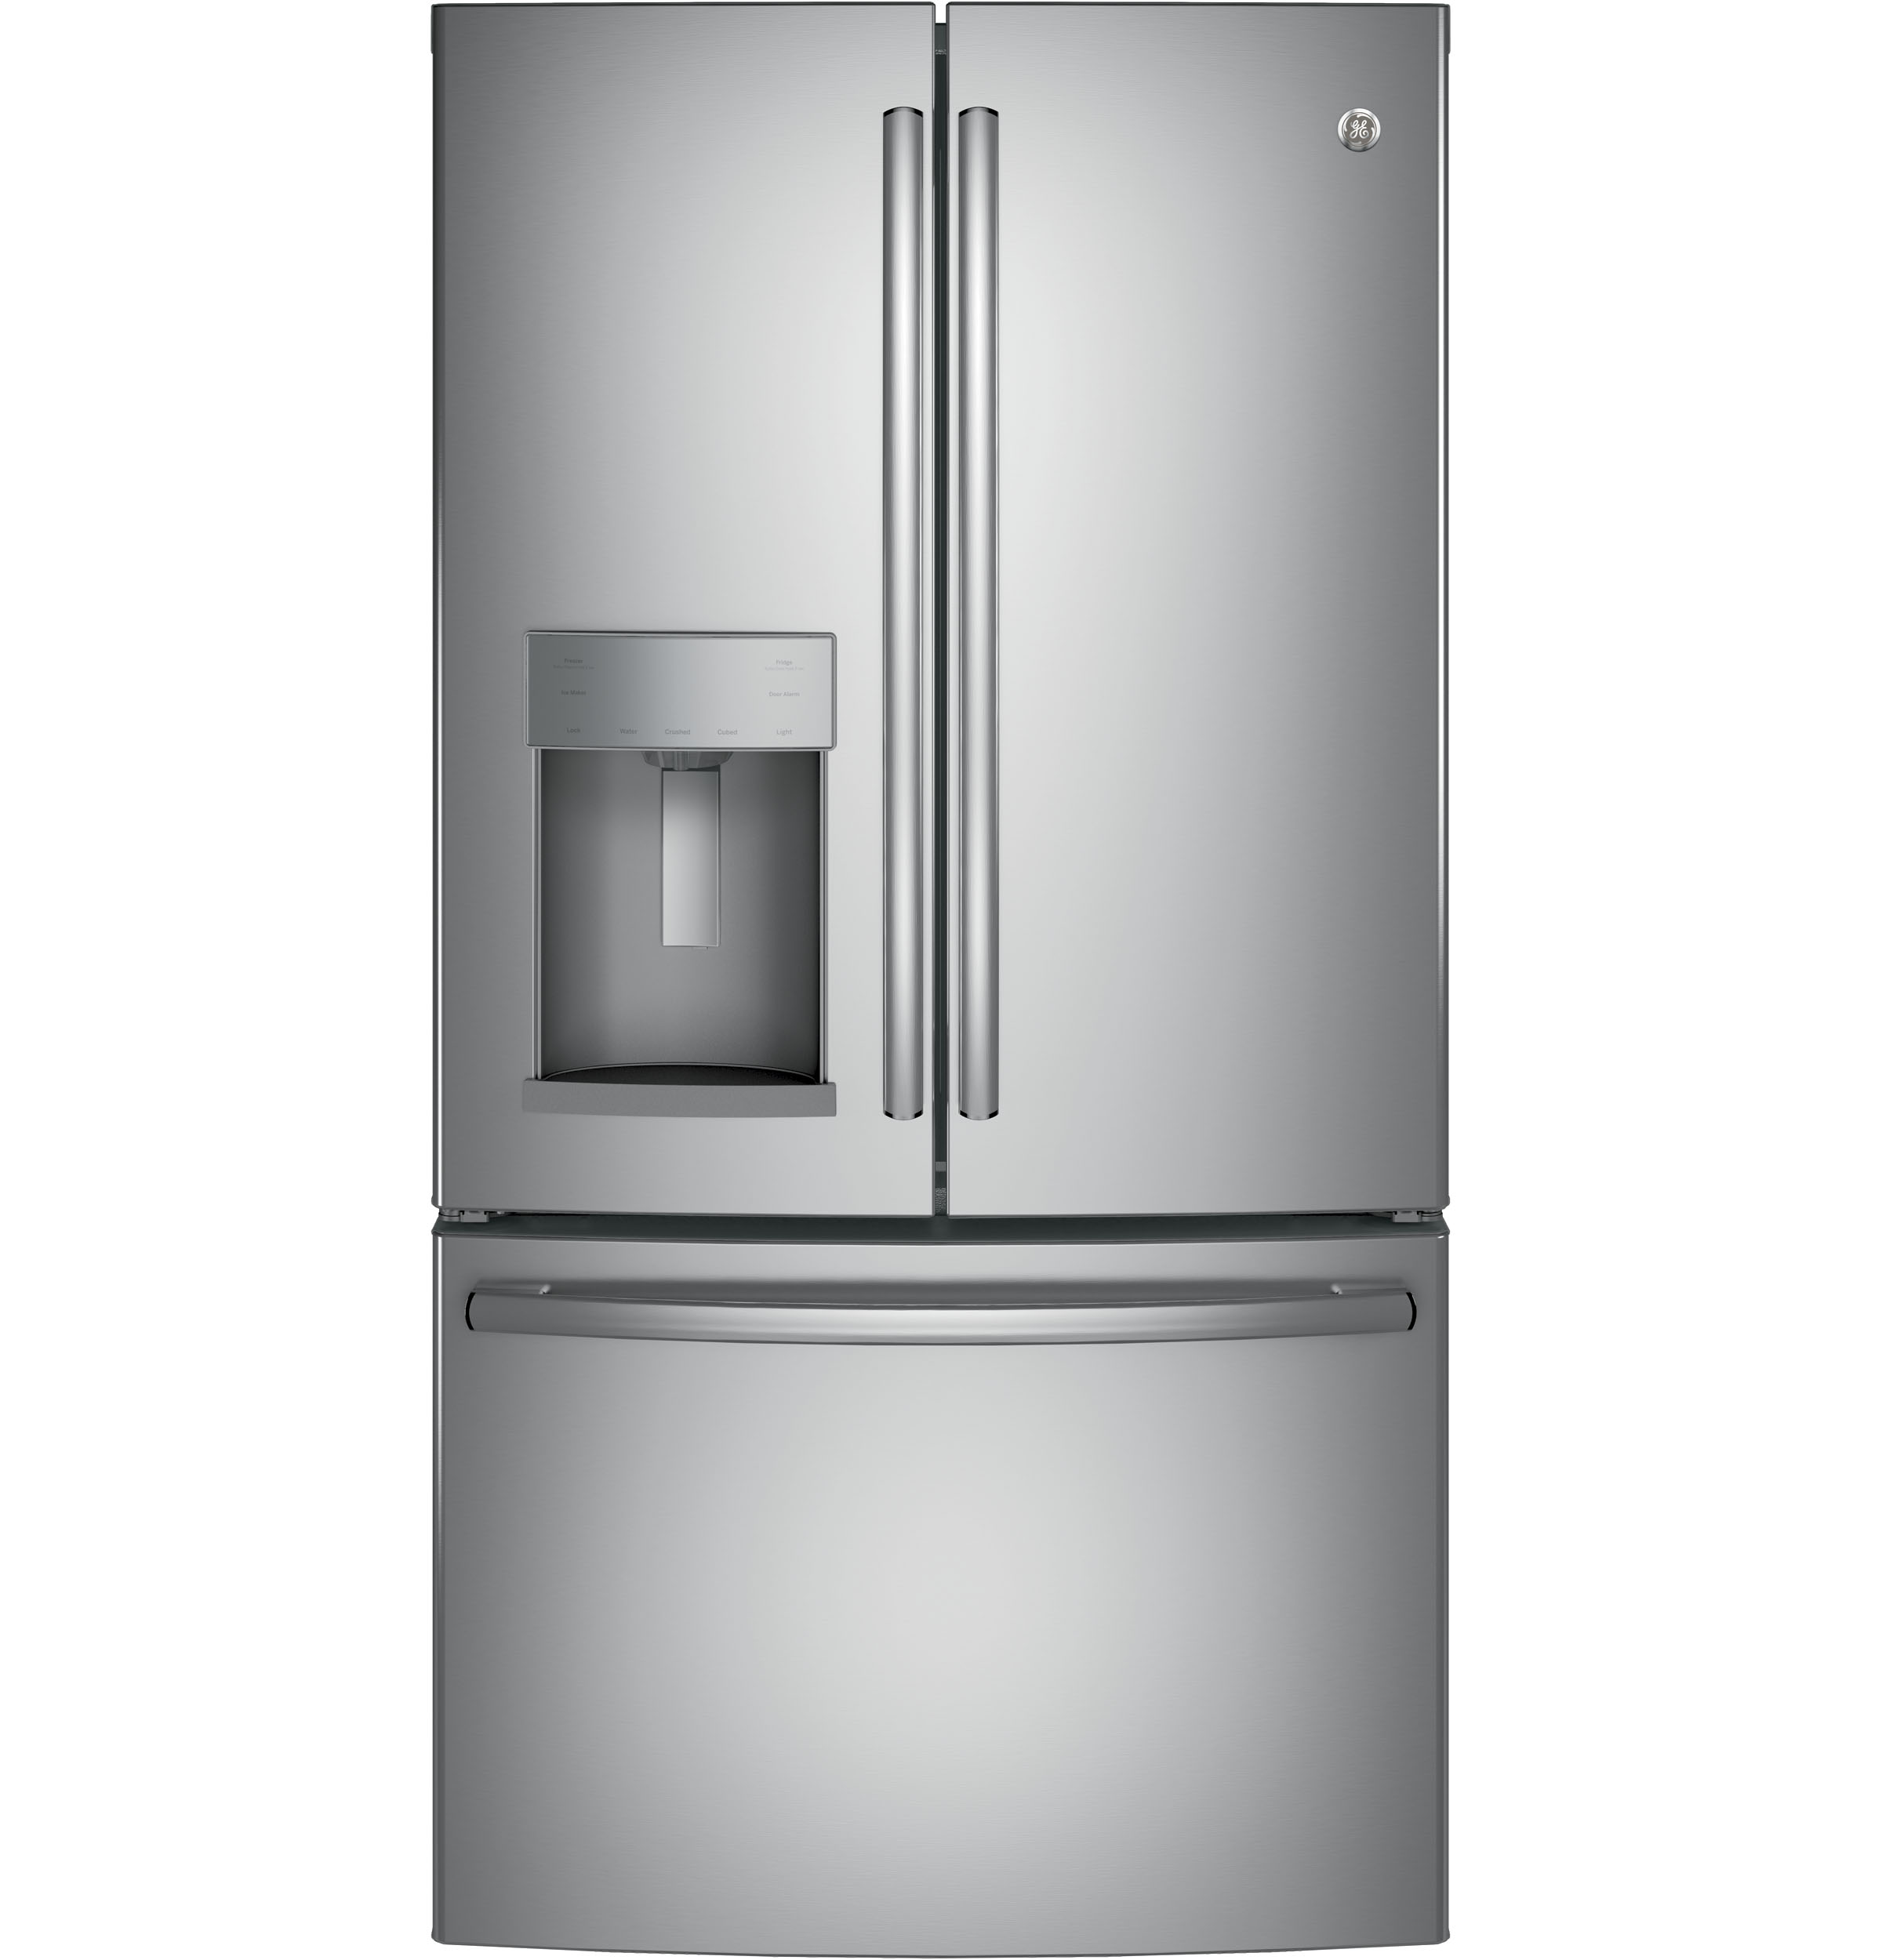 GE GE® ENERGY STAR® 25.8 Cu. Ft. French-Door Refrigerator